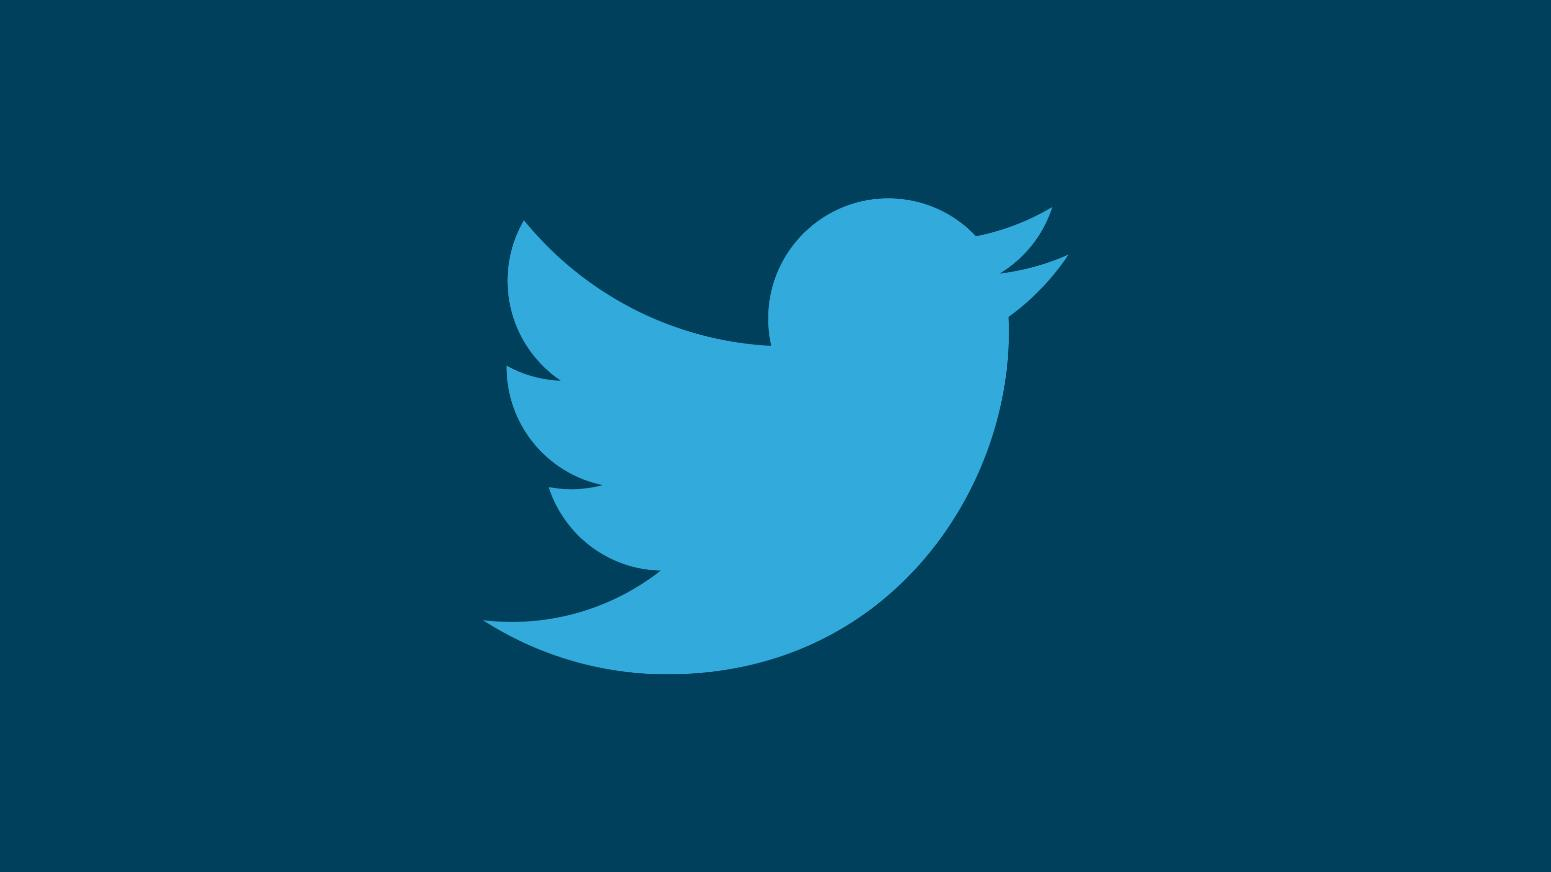 Twitter Users Hit Theaters More Than Average Moviegoers: Study